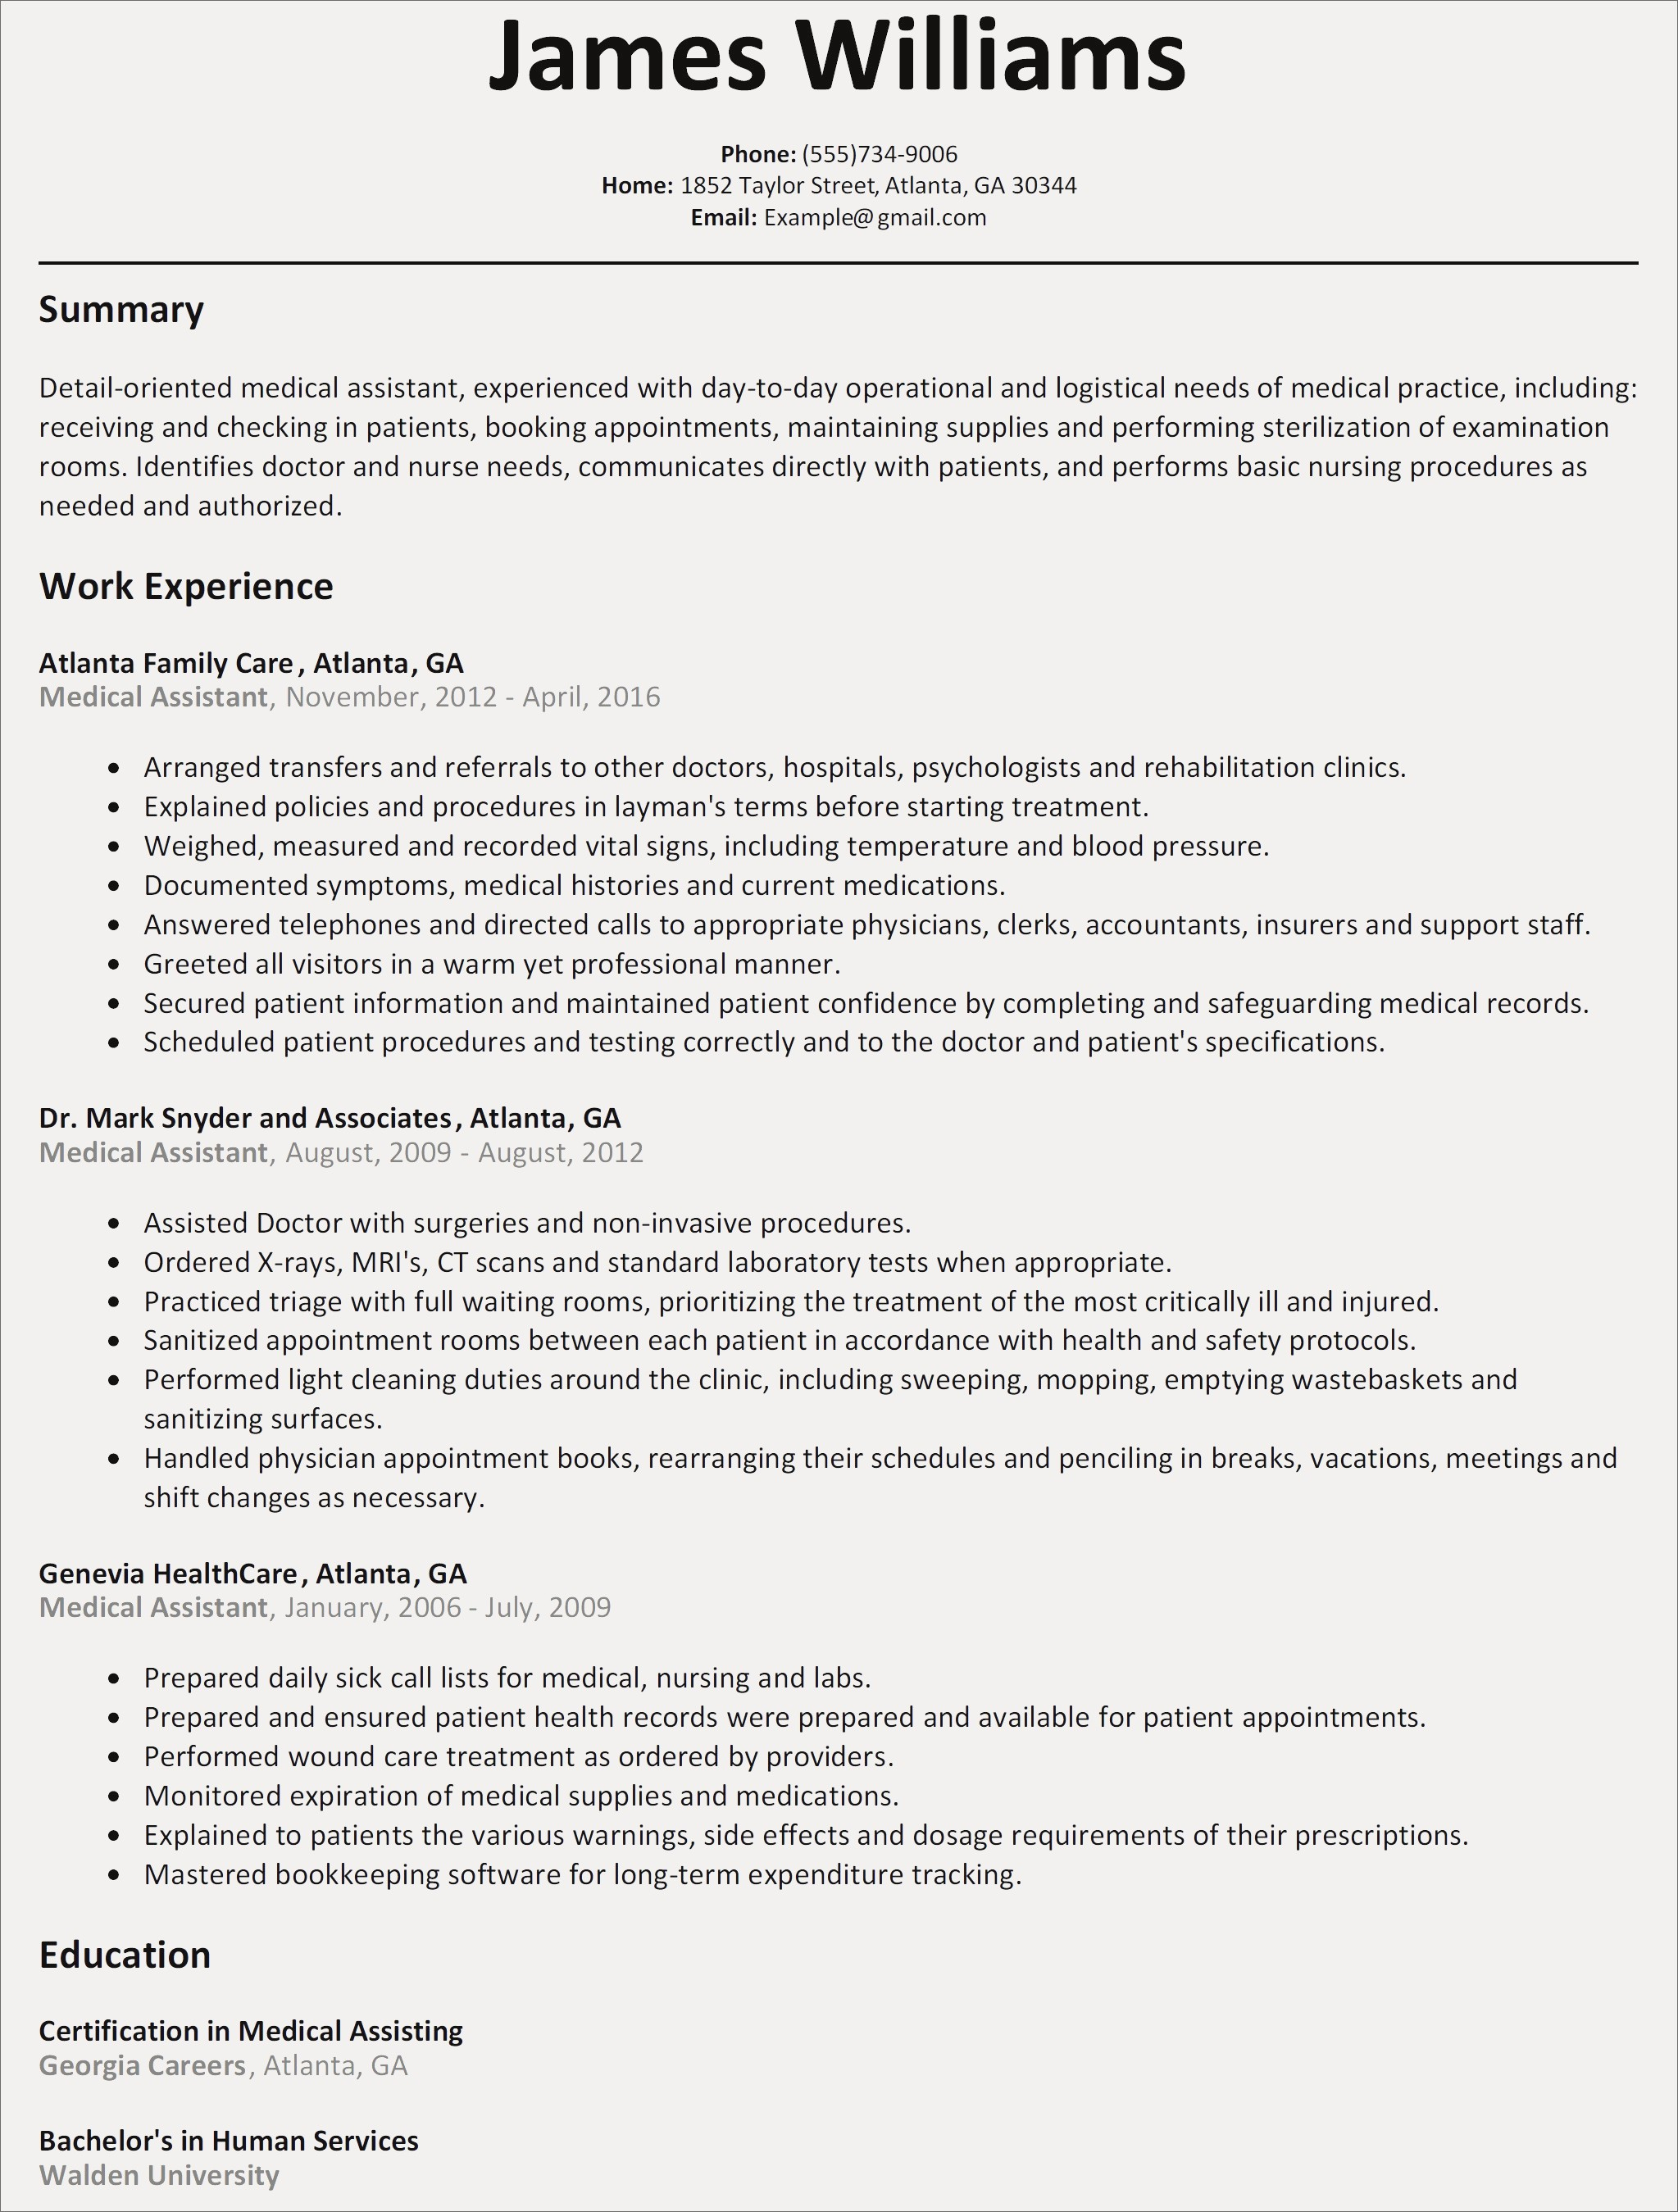 professor resume template example-Sample Resume For Adjunct Professor Position Best Academic Resume Examples Awesome Resume Template Free Word New Od 6-h